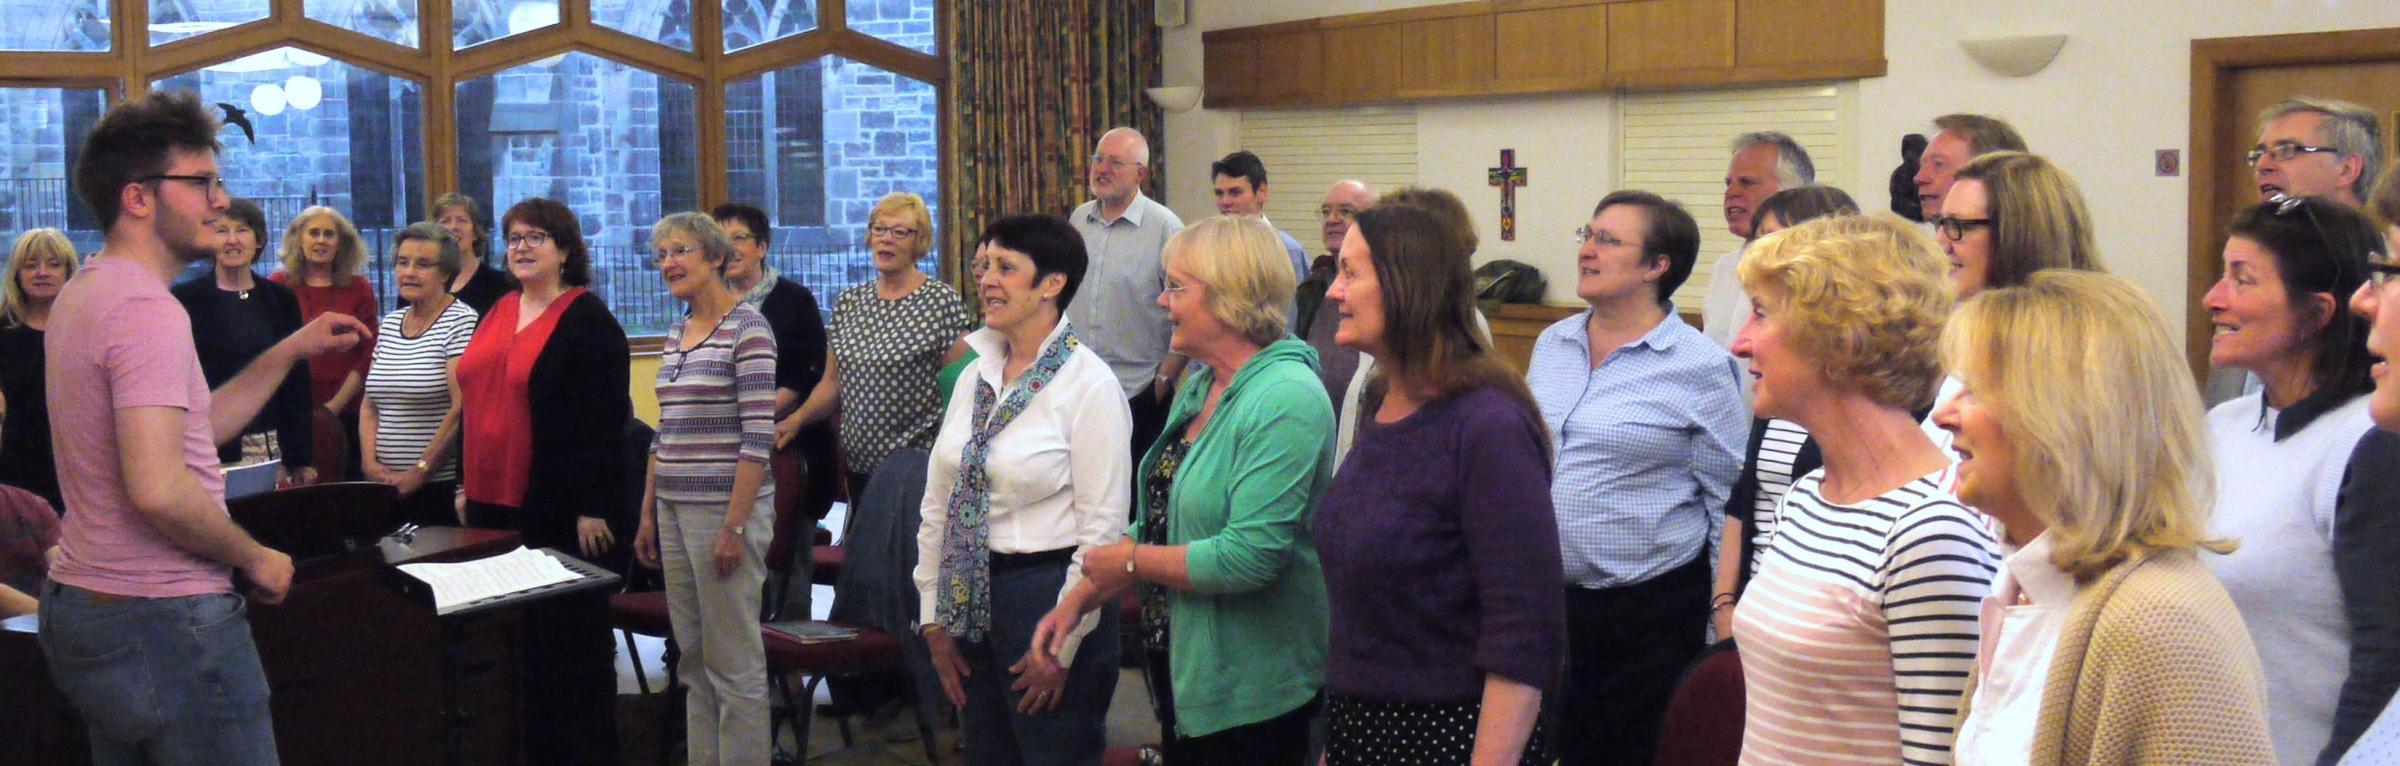 A singing workshop is to take place thanks to sponsorship by Ilkley Parish Council